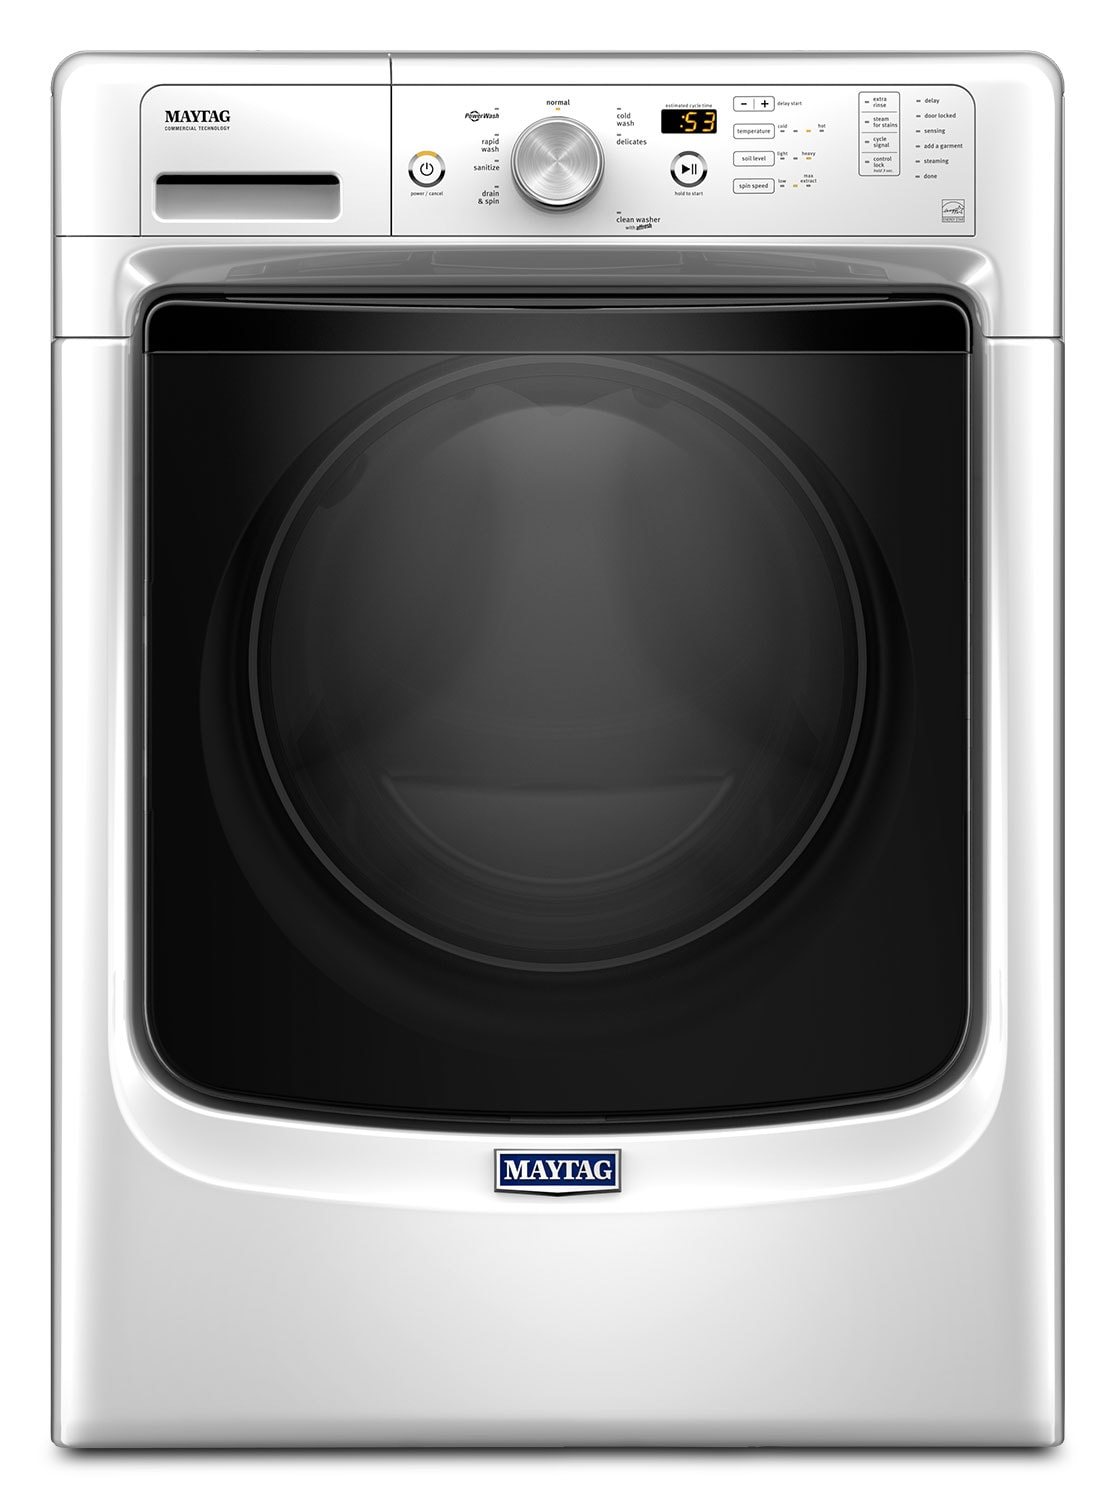 Maytag White Front-Load Washer (5.0 Cu. Ft.) - MHW3500FW